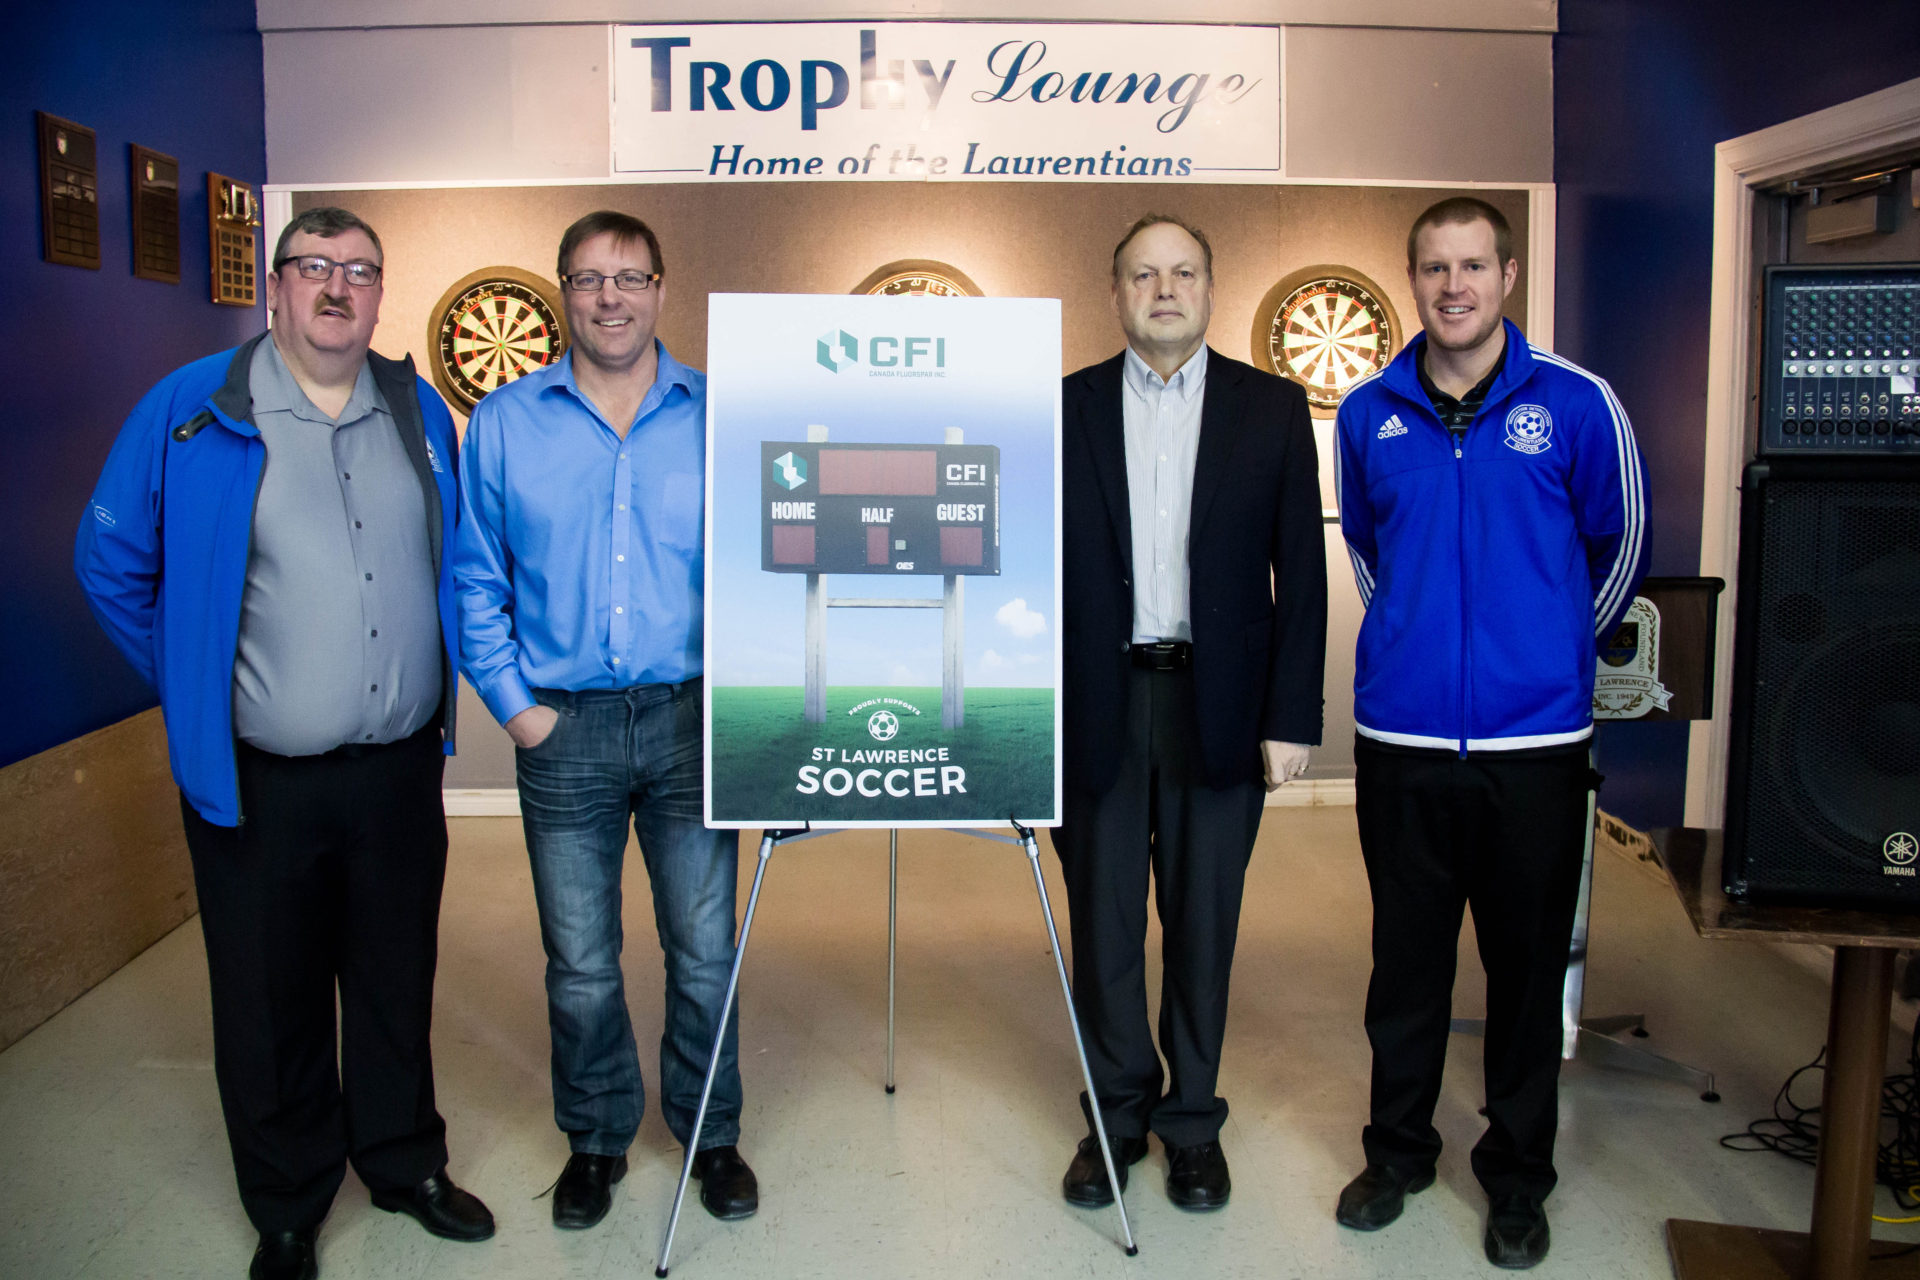 (l-r) Hubert Beck, President of the St. Lawrence Senior Men's Soccer Association, Lindsay Gorrill, CEO of CFI, Paul Pike, Mayor of St. Lawrence, and Marc Pitman, President of St. Lawrence Junior SoccerAssociation